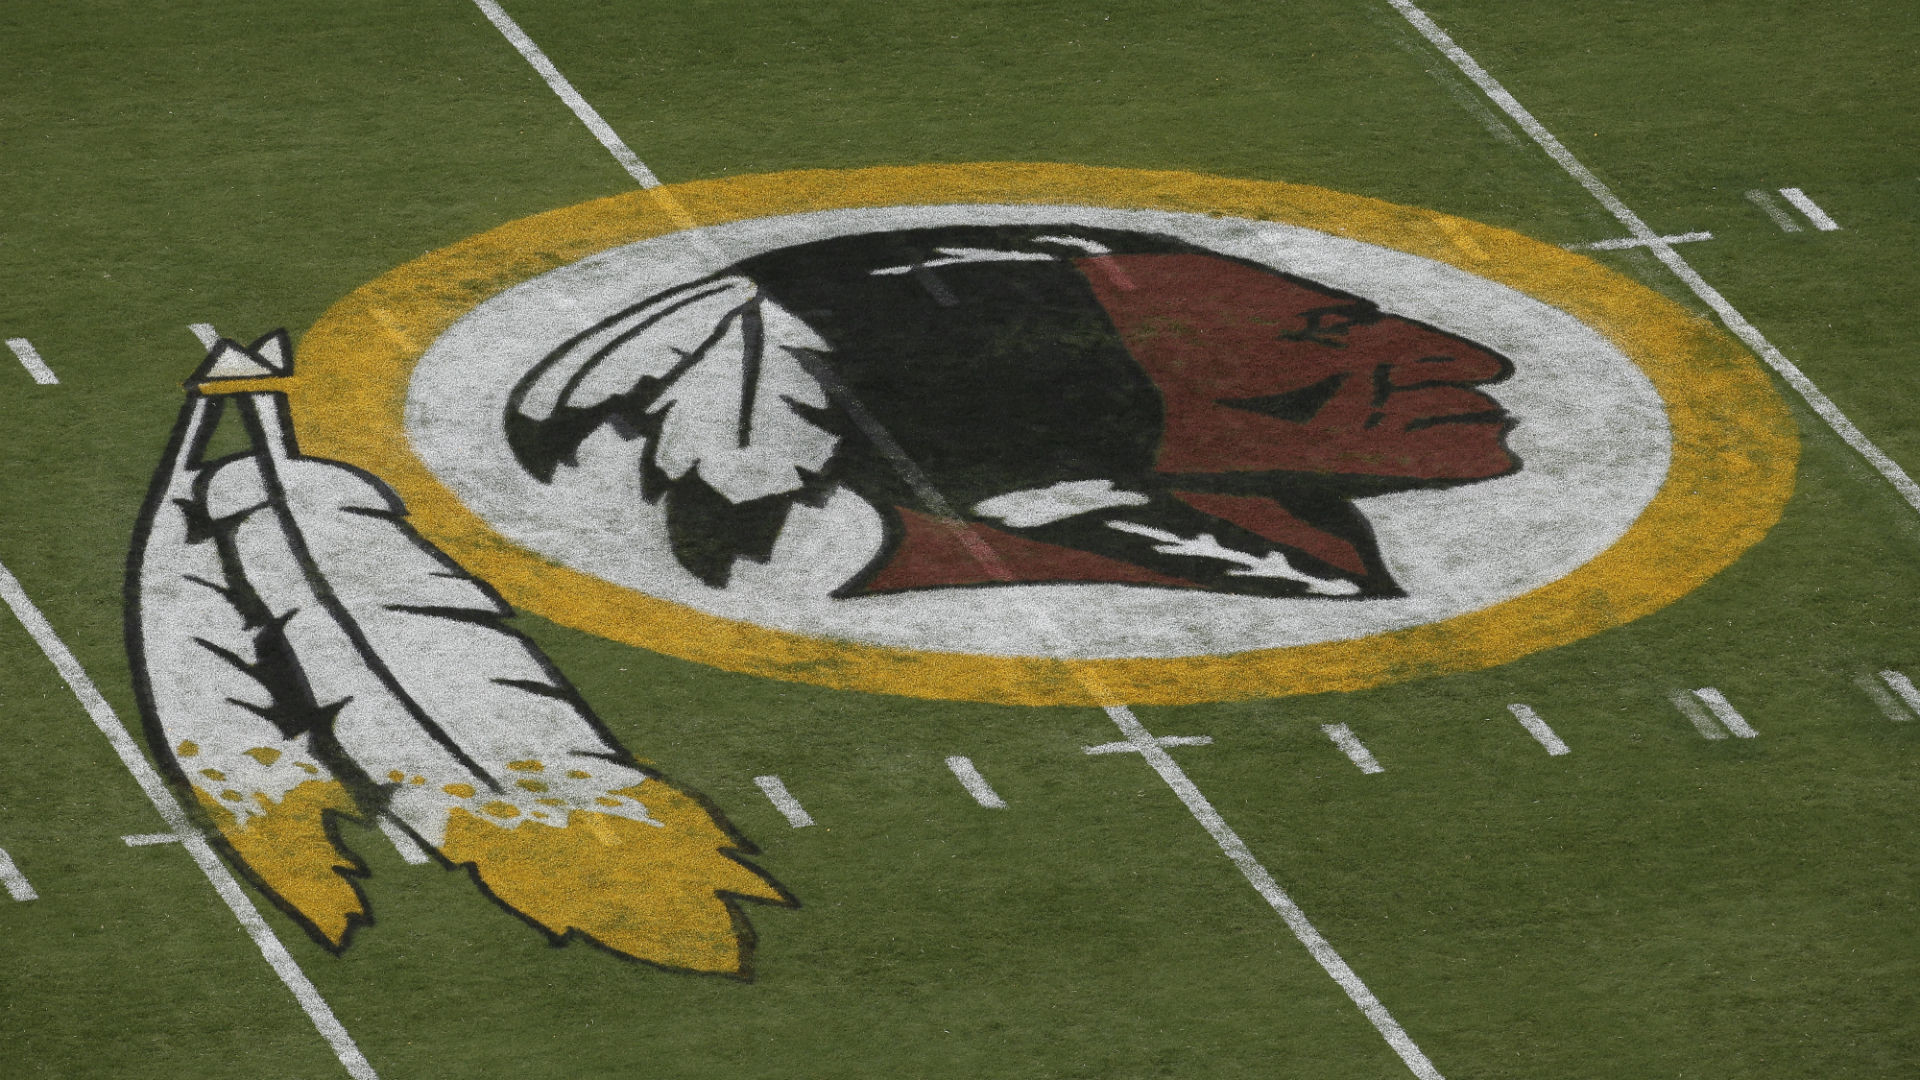 1920x1080 Etsy won't sell merchandise containing 'Redskins' | NFL | Sporting News